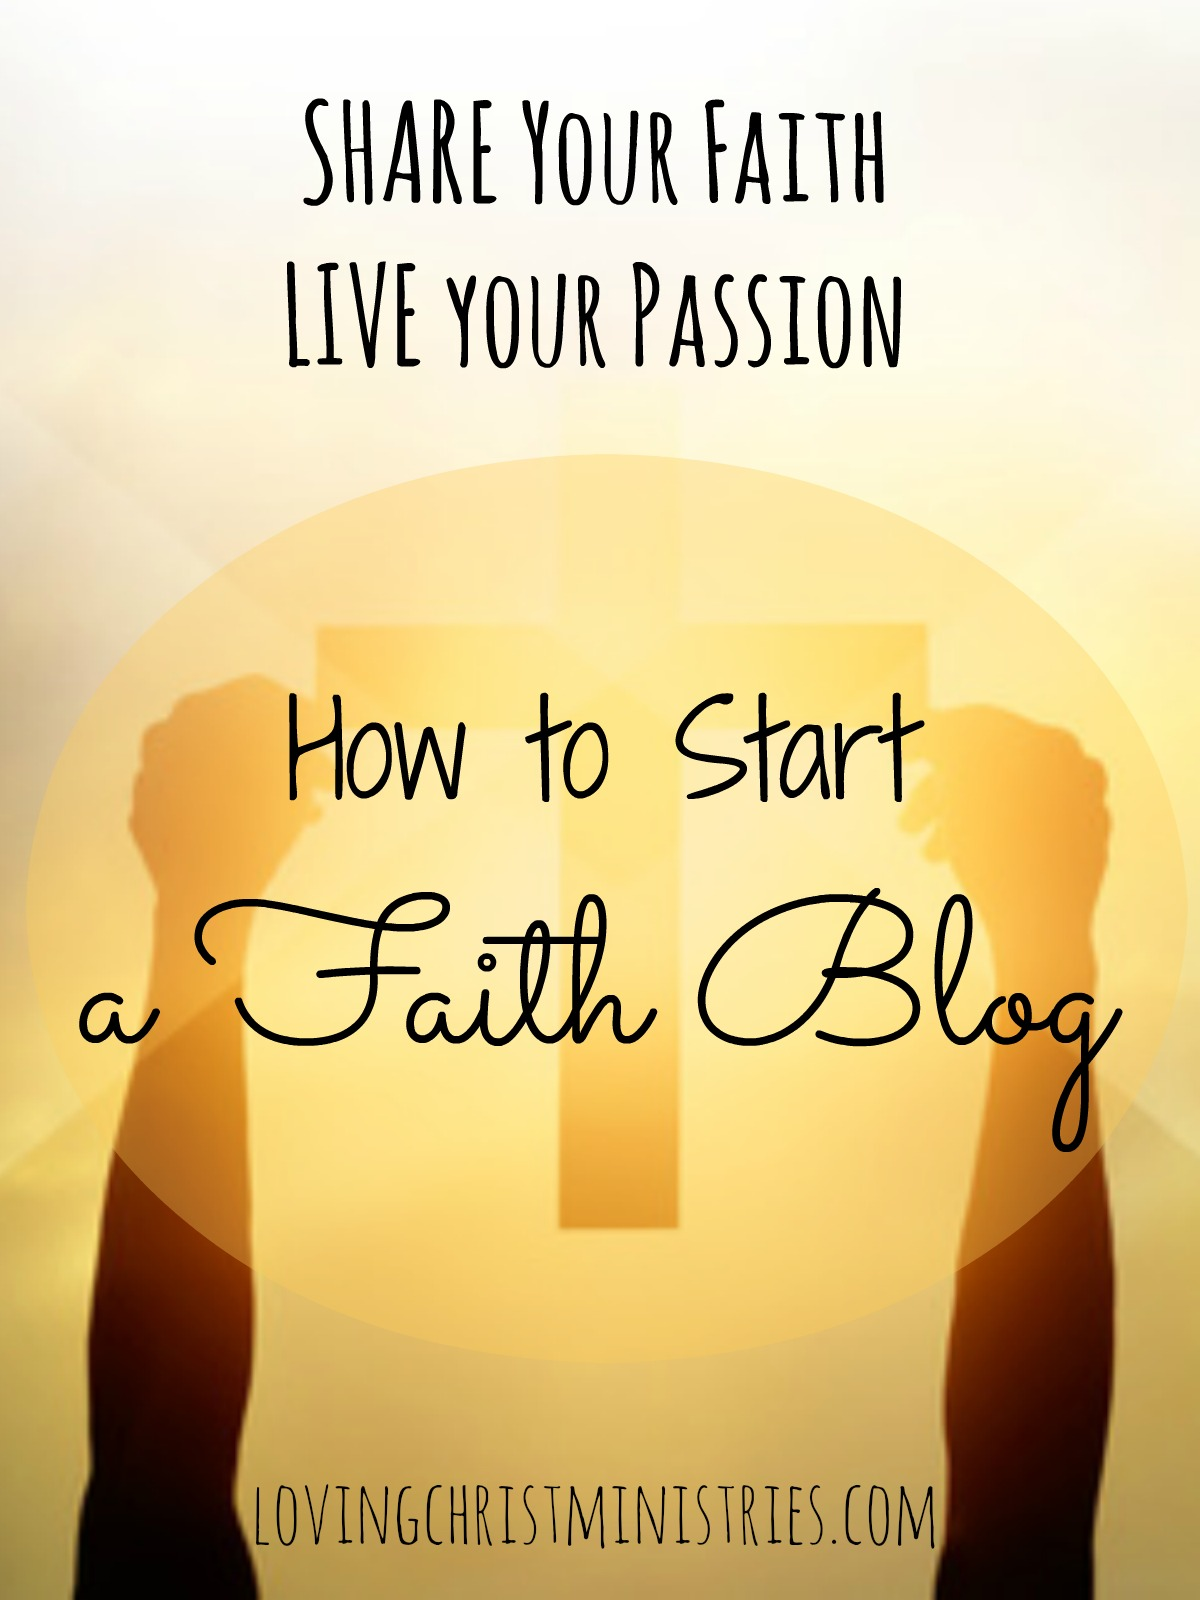 Learn how to start a faith blog so that you can share your faith and live your passion. This free email course will help you on your way.